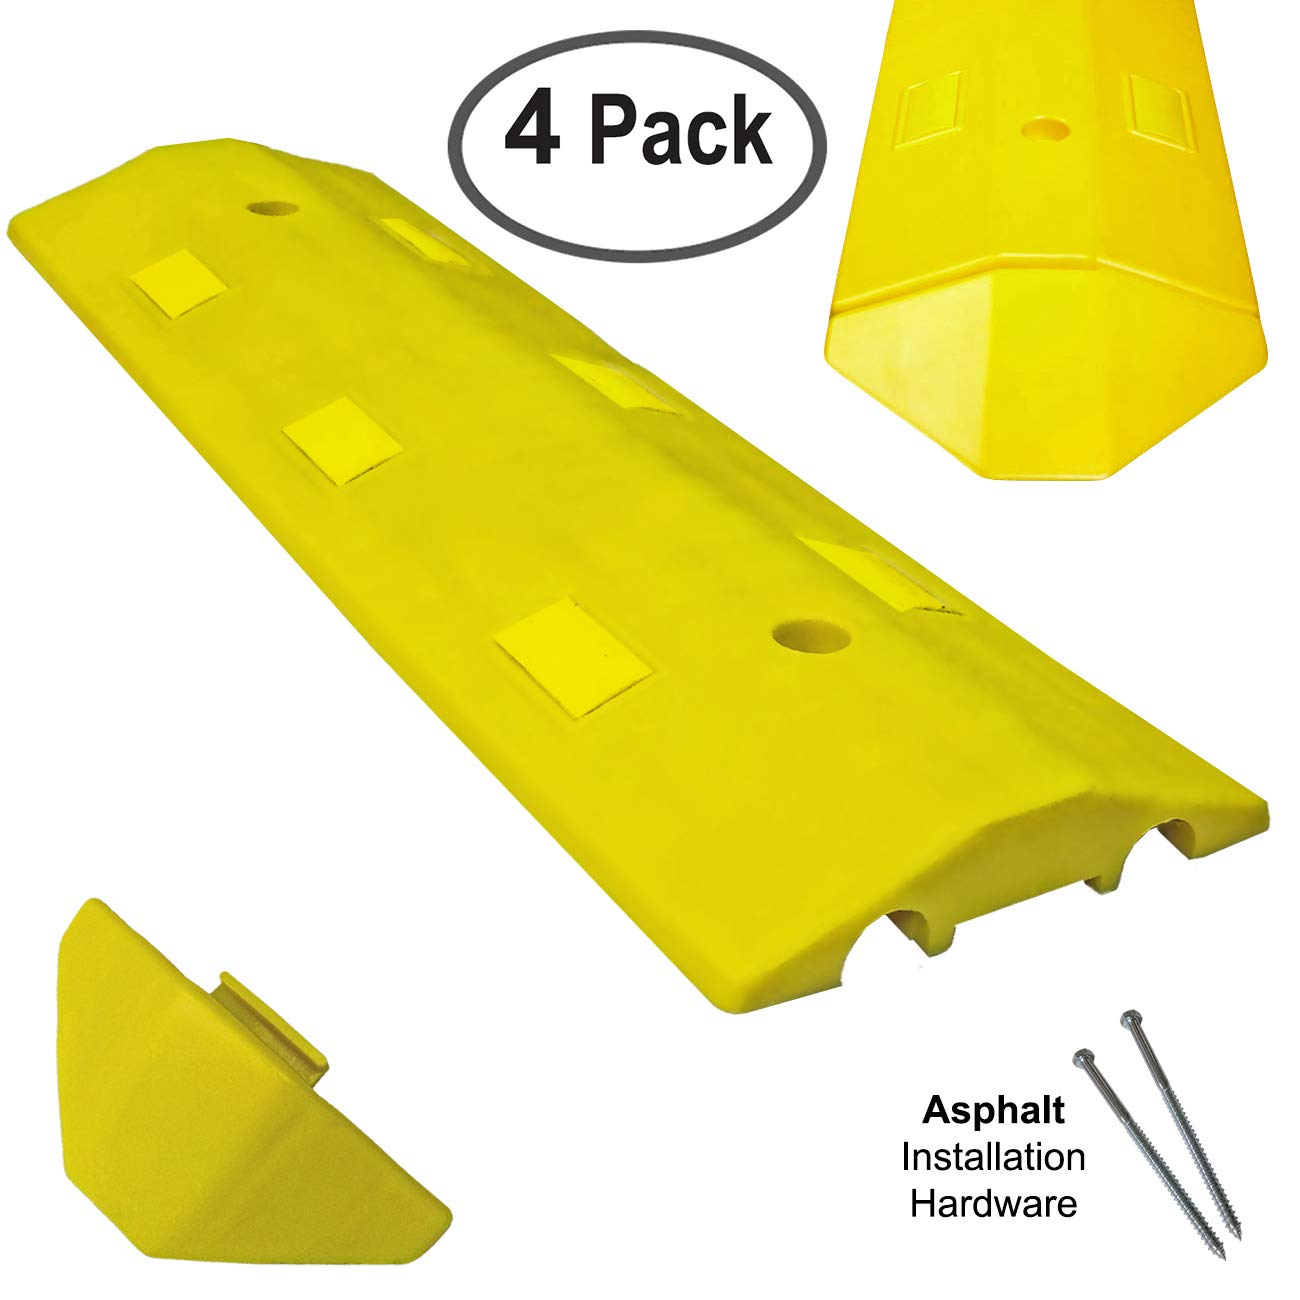 Electriduct Ultra Light Weight Economy Speed Bump - Yellow - 4 Pieces (12 Feet) - Asphalt